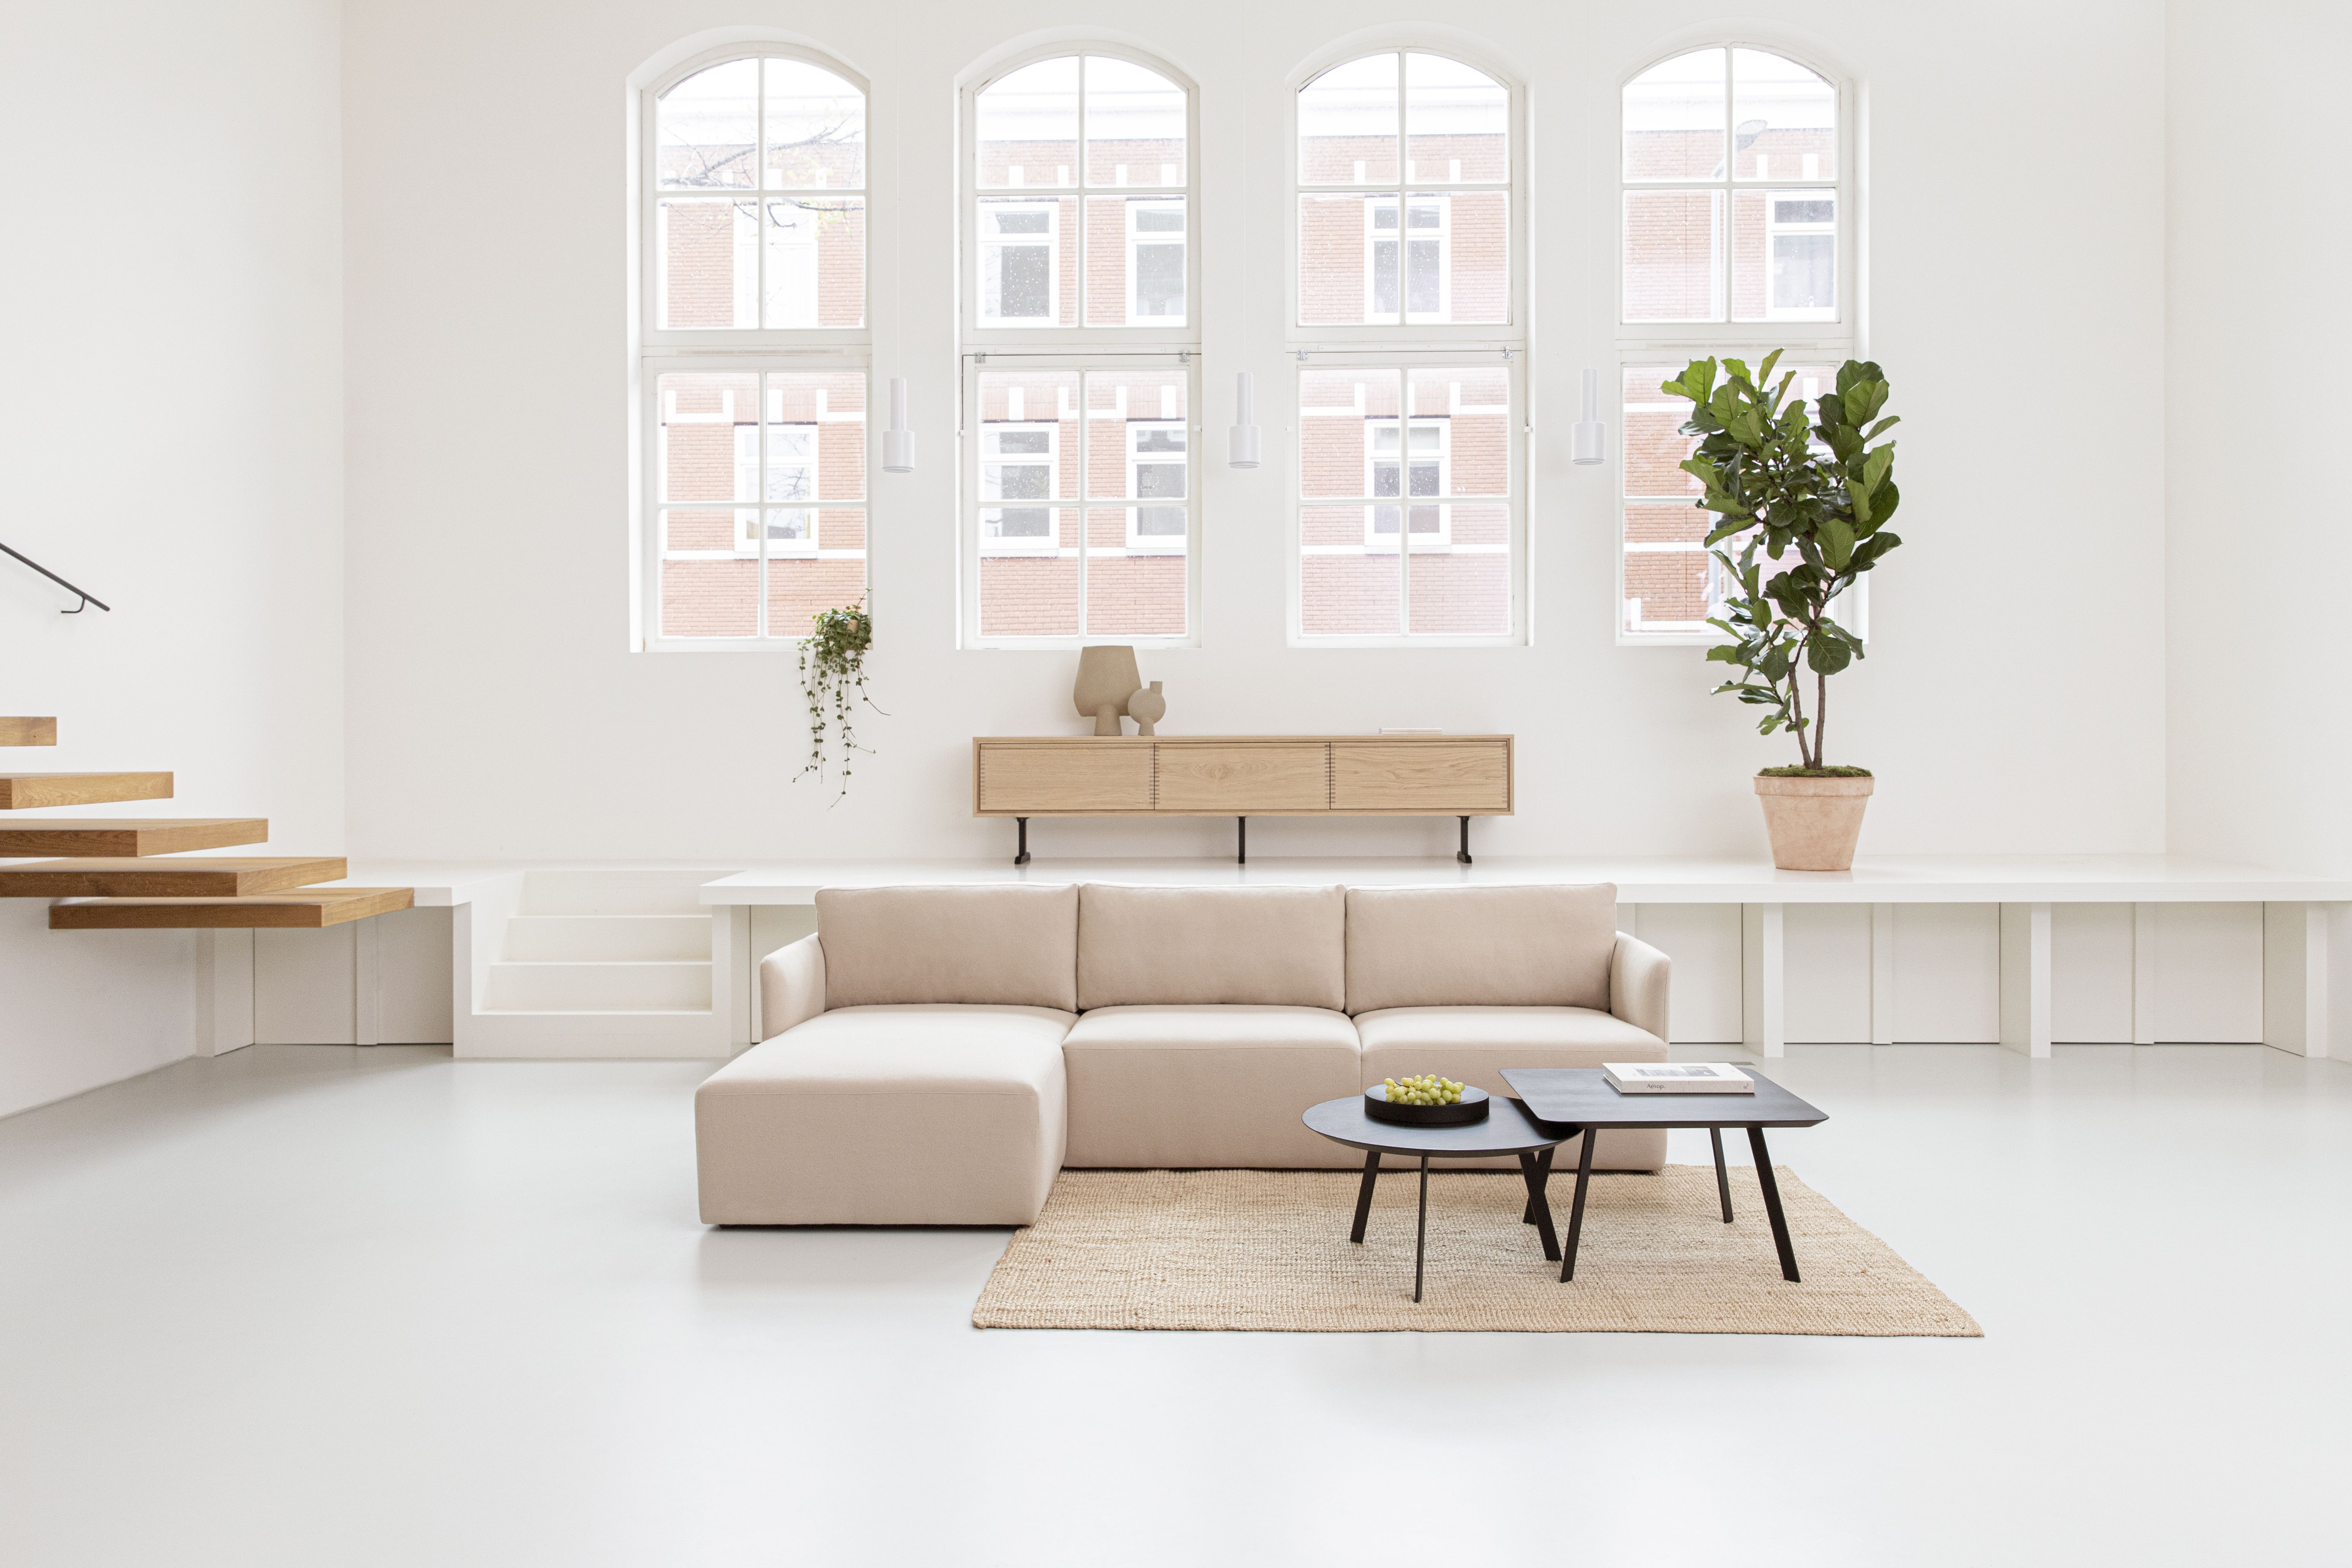 We Ve Added A New Sofa To Our Collection The Cube As We Believe In Having A Good Foundation We Decided To D In 2020 Huis Interieur Design Huis Interieur Interieur